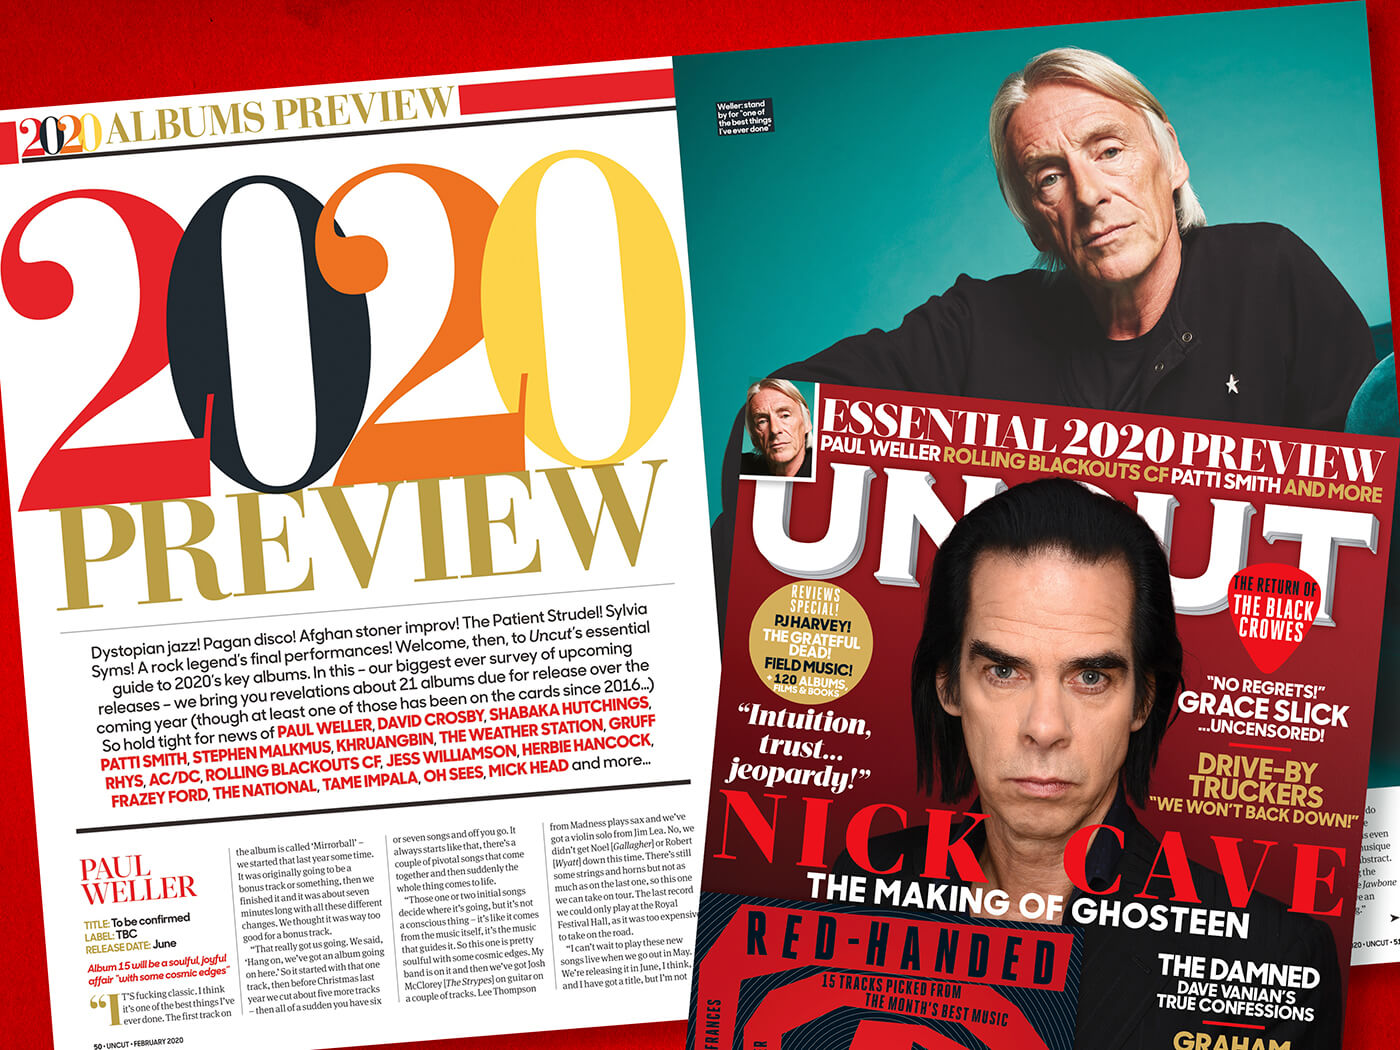 Read more about Uncut's essential 2020 preview!